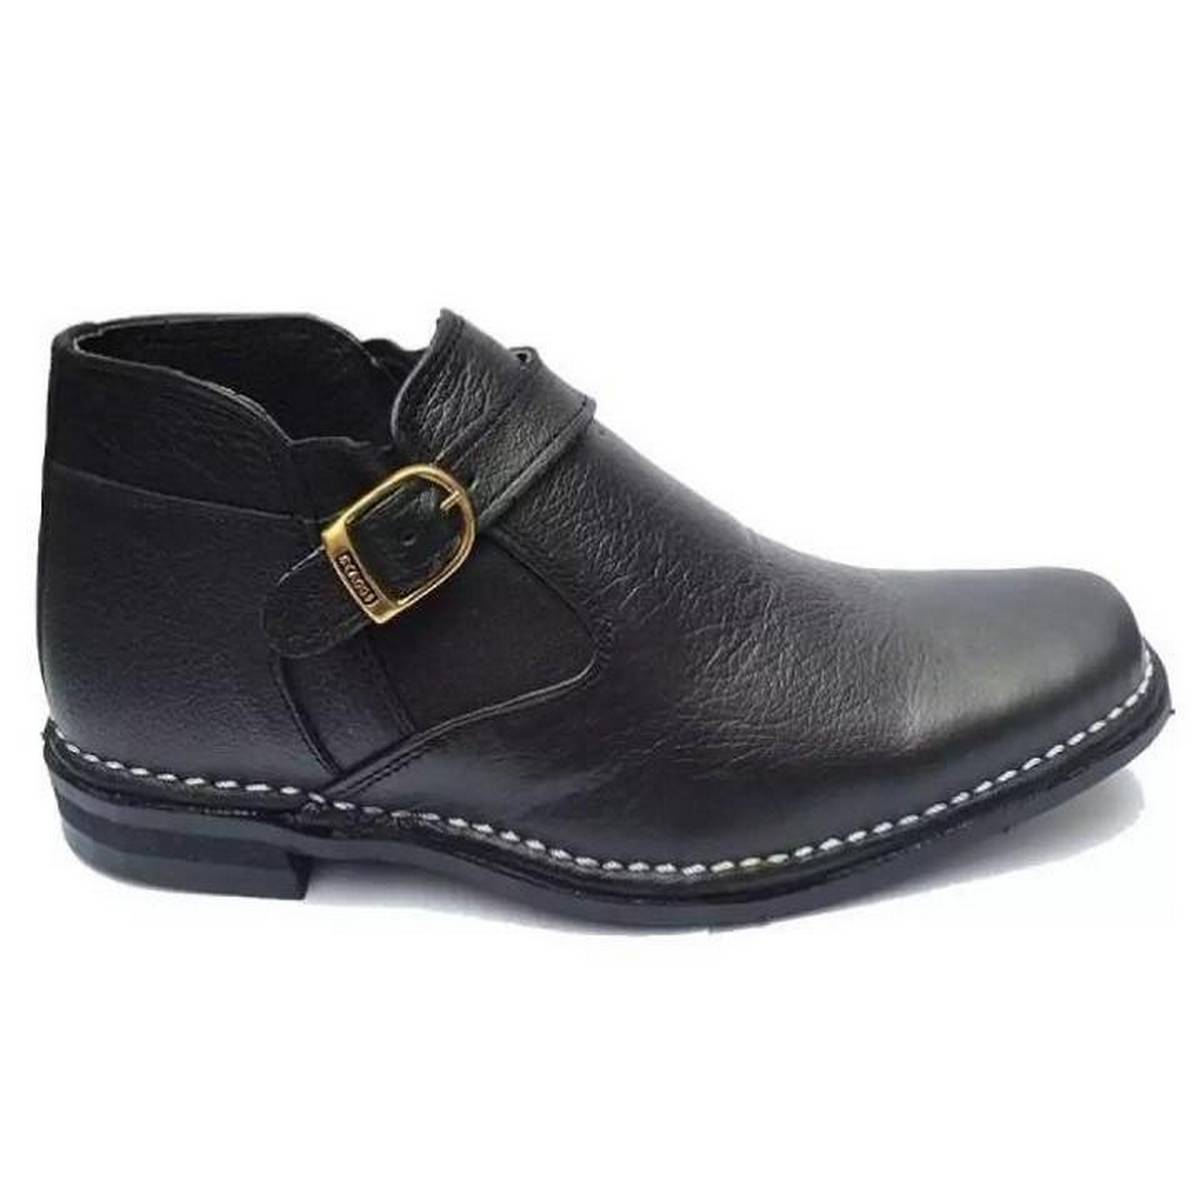 Don Carlos style pure leather hand made mardan shoes